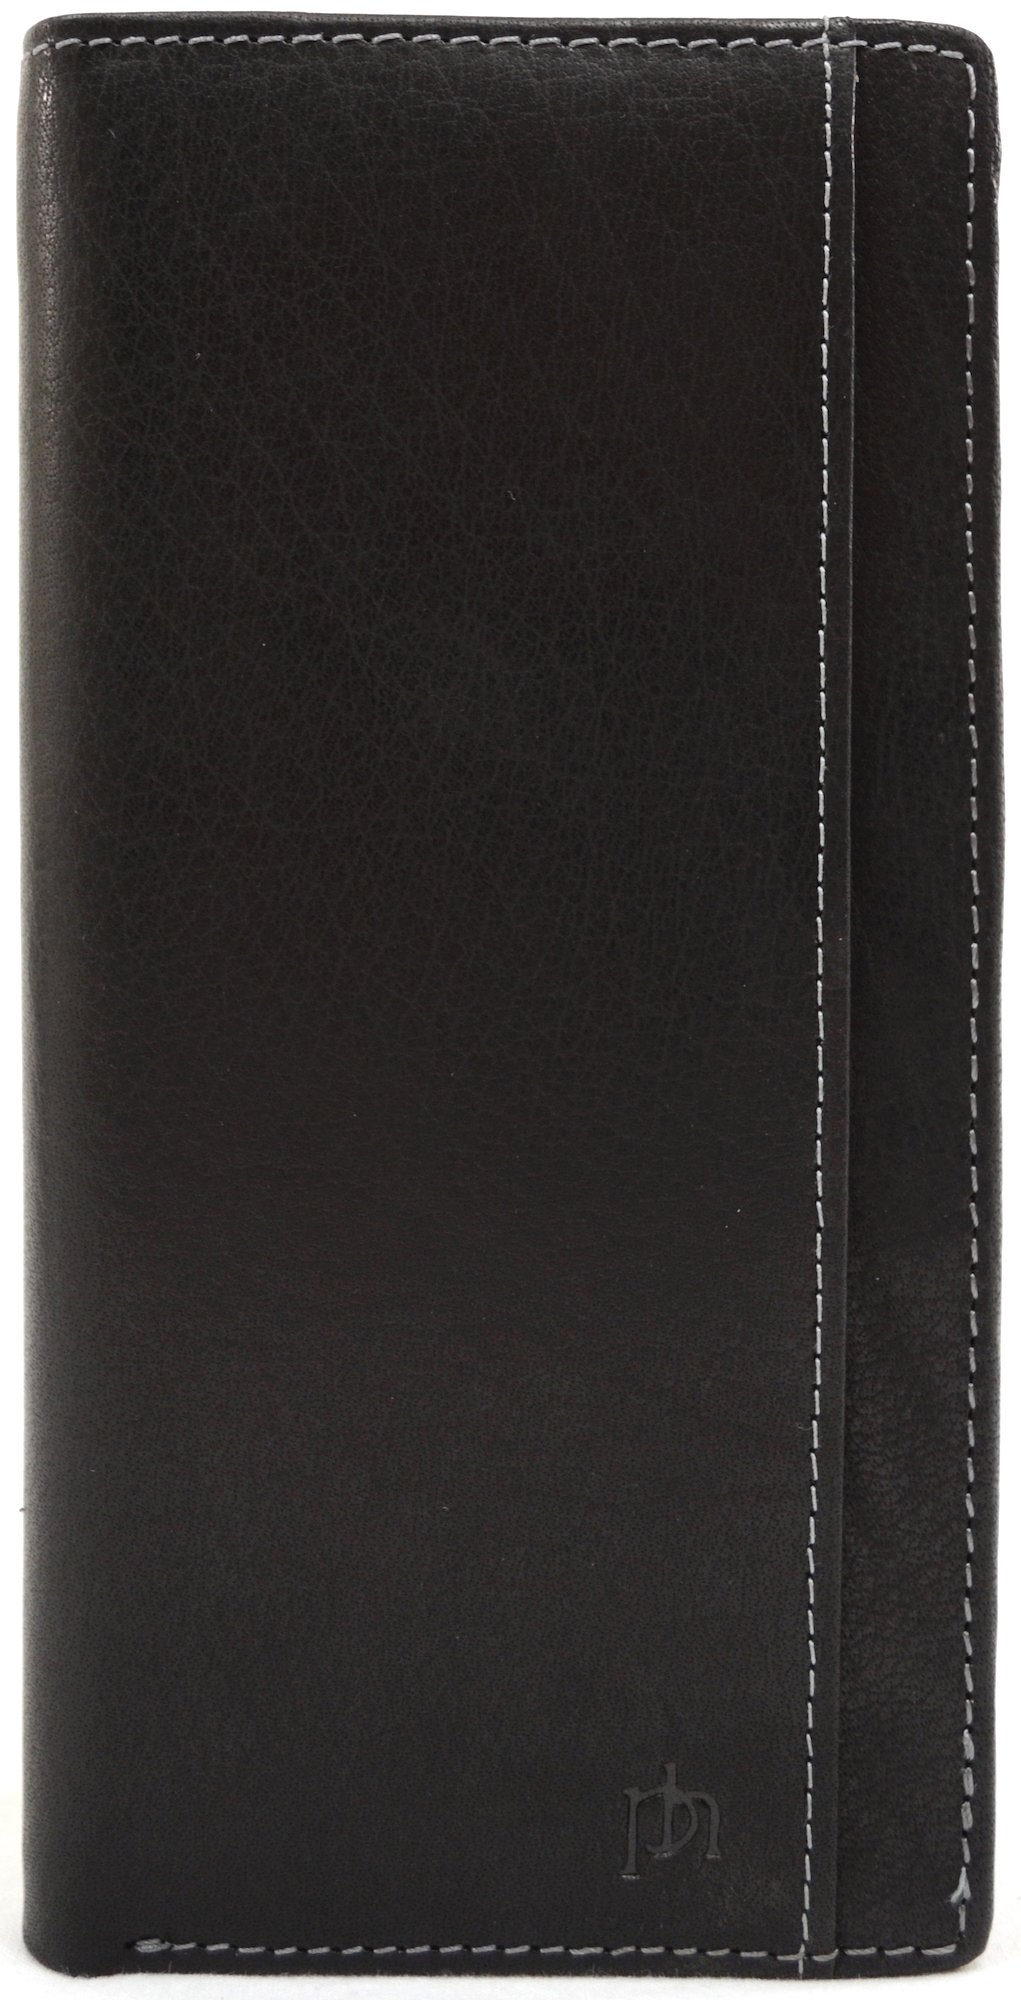 Mens Super Soft 100% Leather Bi-Fold Slim Jacket Wallet RFID Safe by REDHIDE